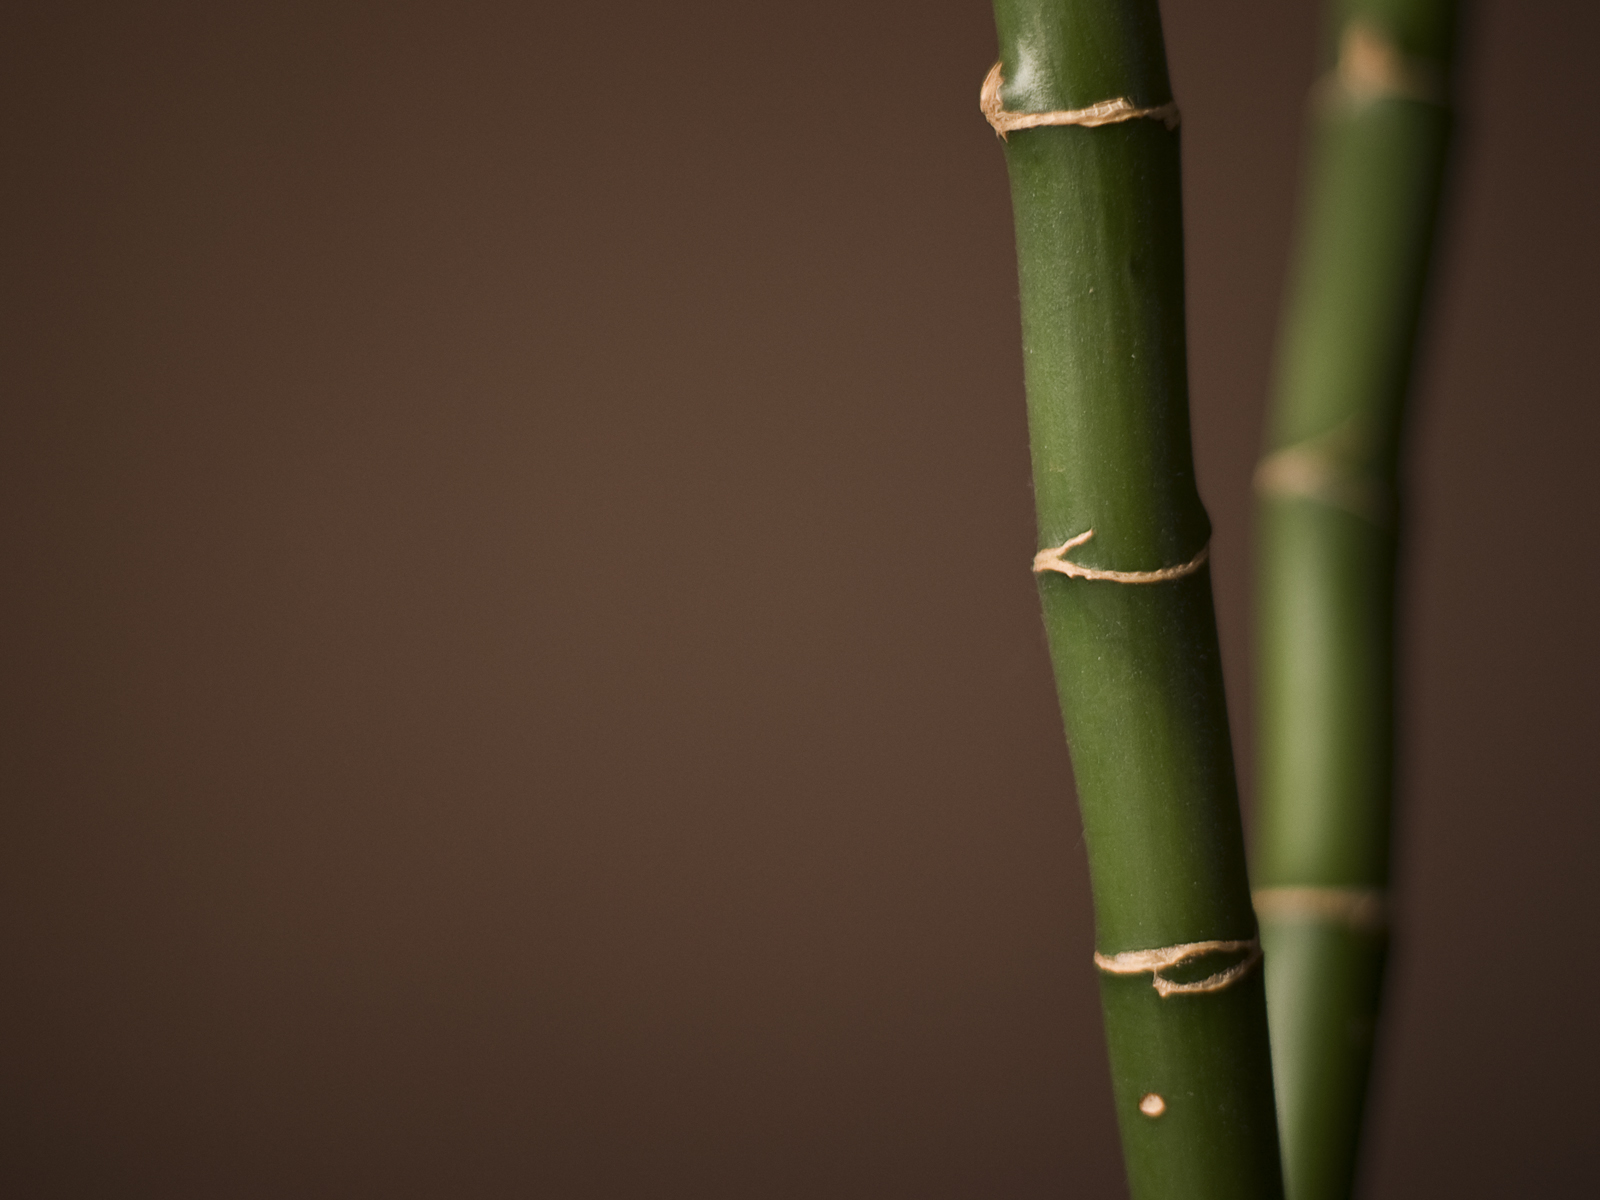 Bamboo wallpaper bamboo wallpapers 1 10 1600 x 1200 for Bamboo wallpaper for walls